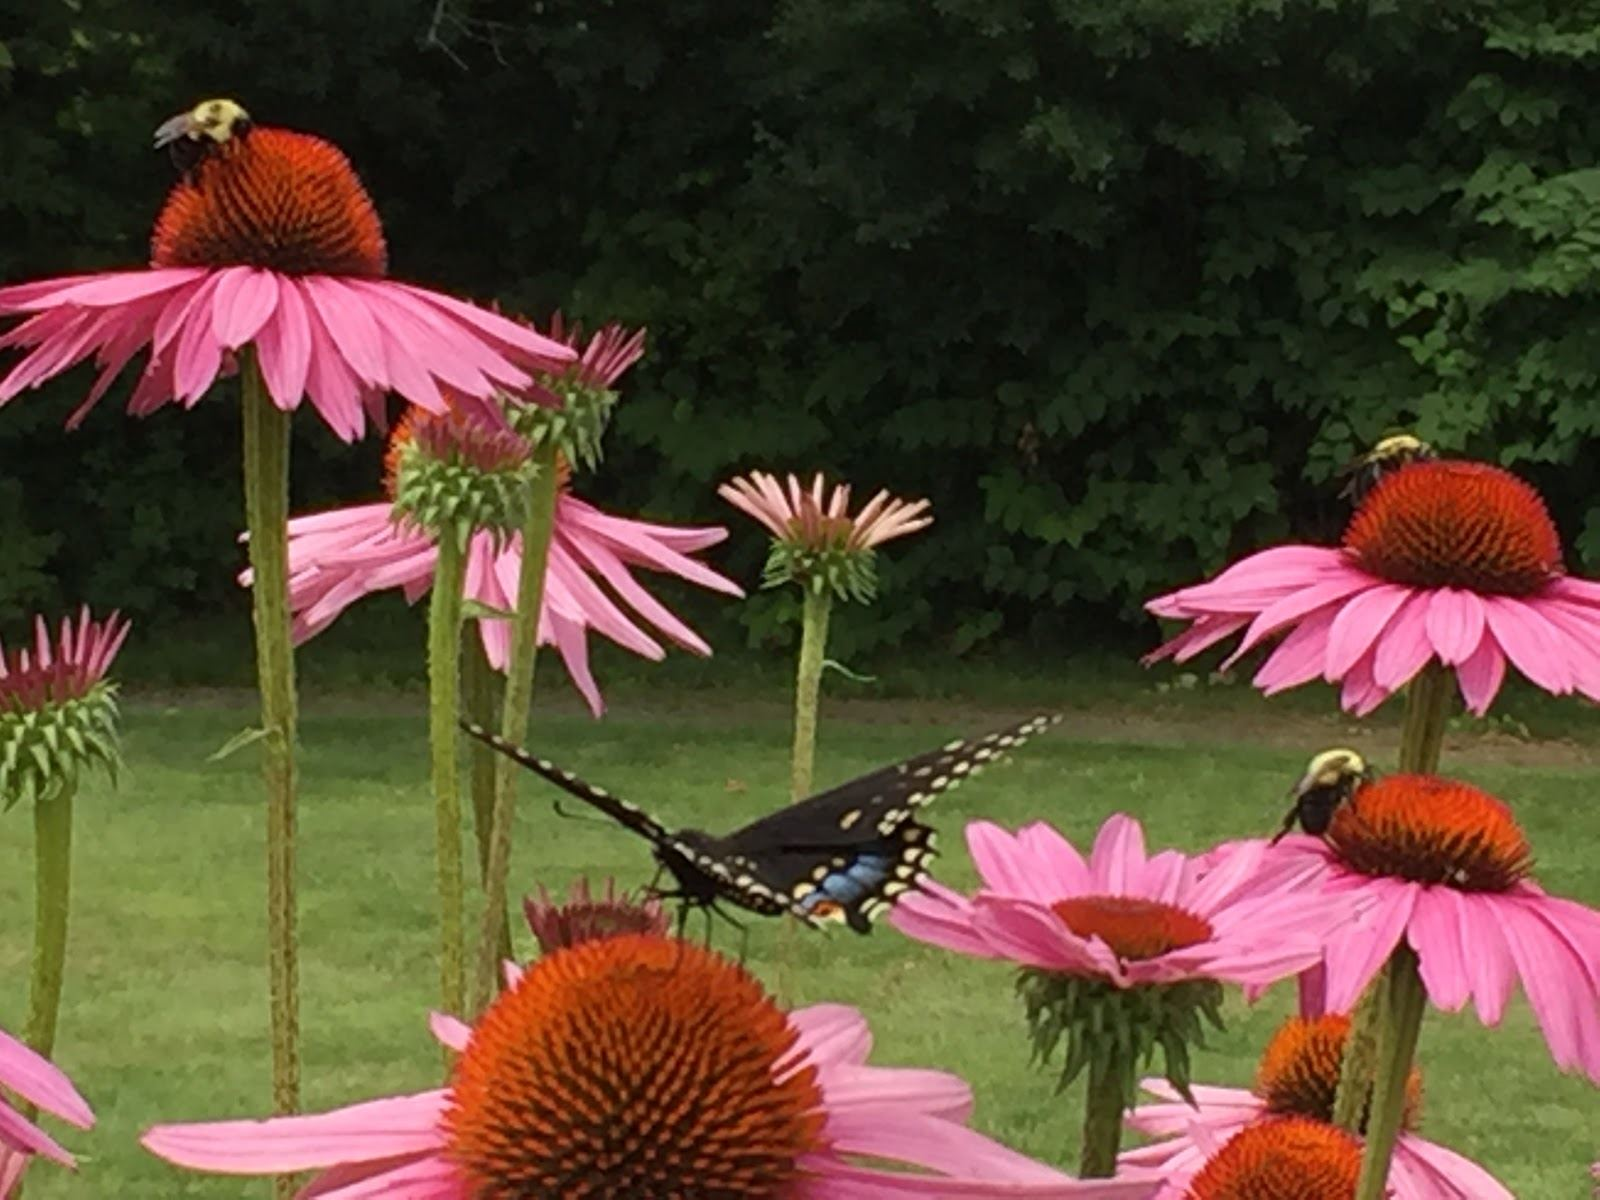 Bumblebees and a Black Swallowtail butterfly foraging on Echinacea purpurea at Canillas.